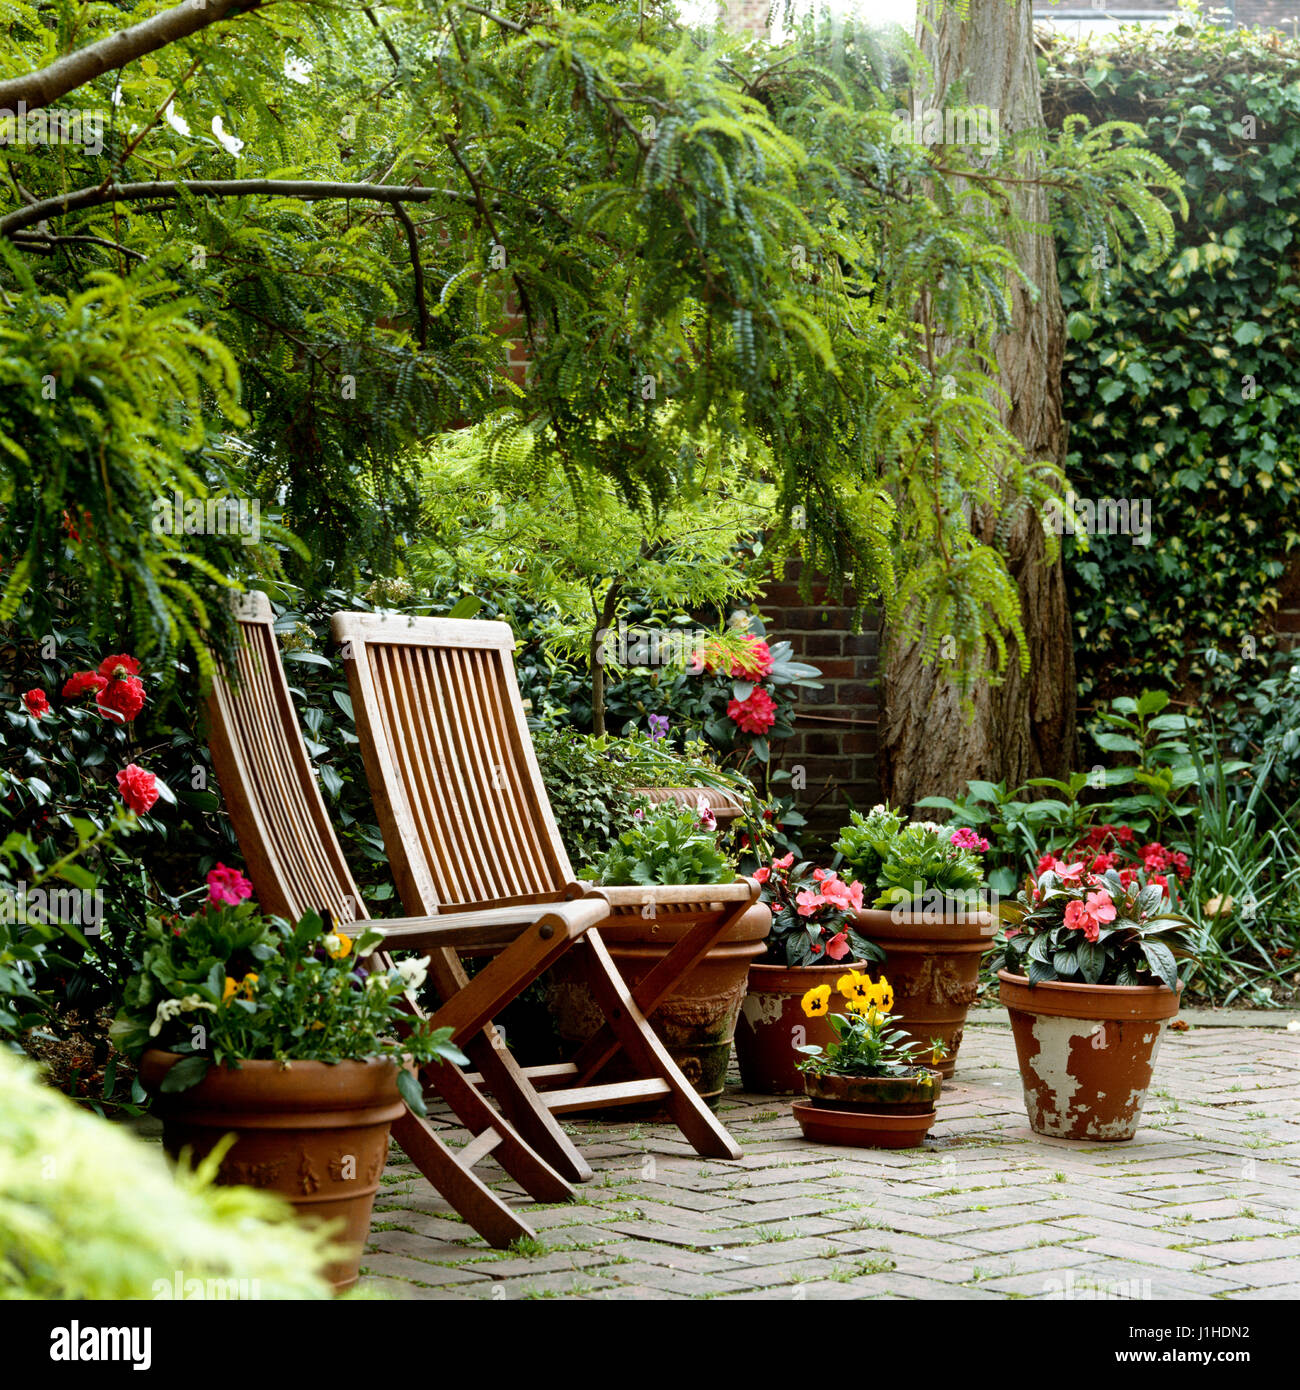 Deck chairs on patio. - Stock Image